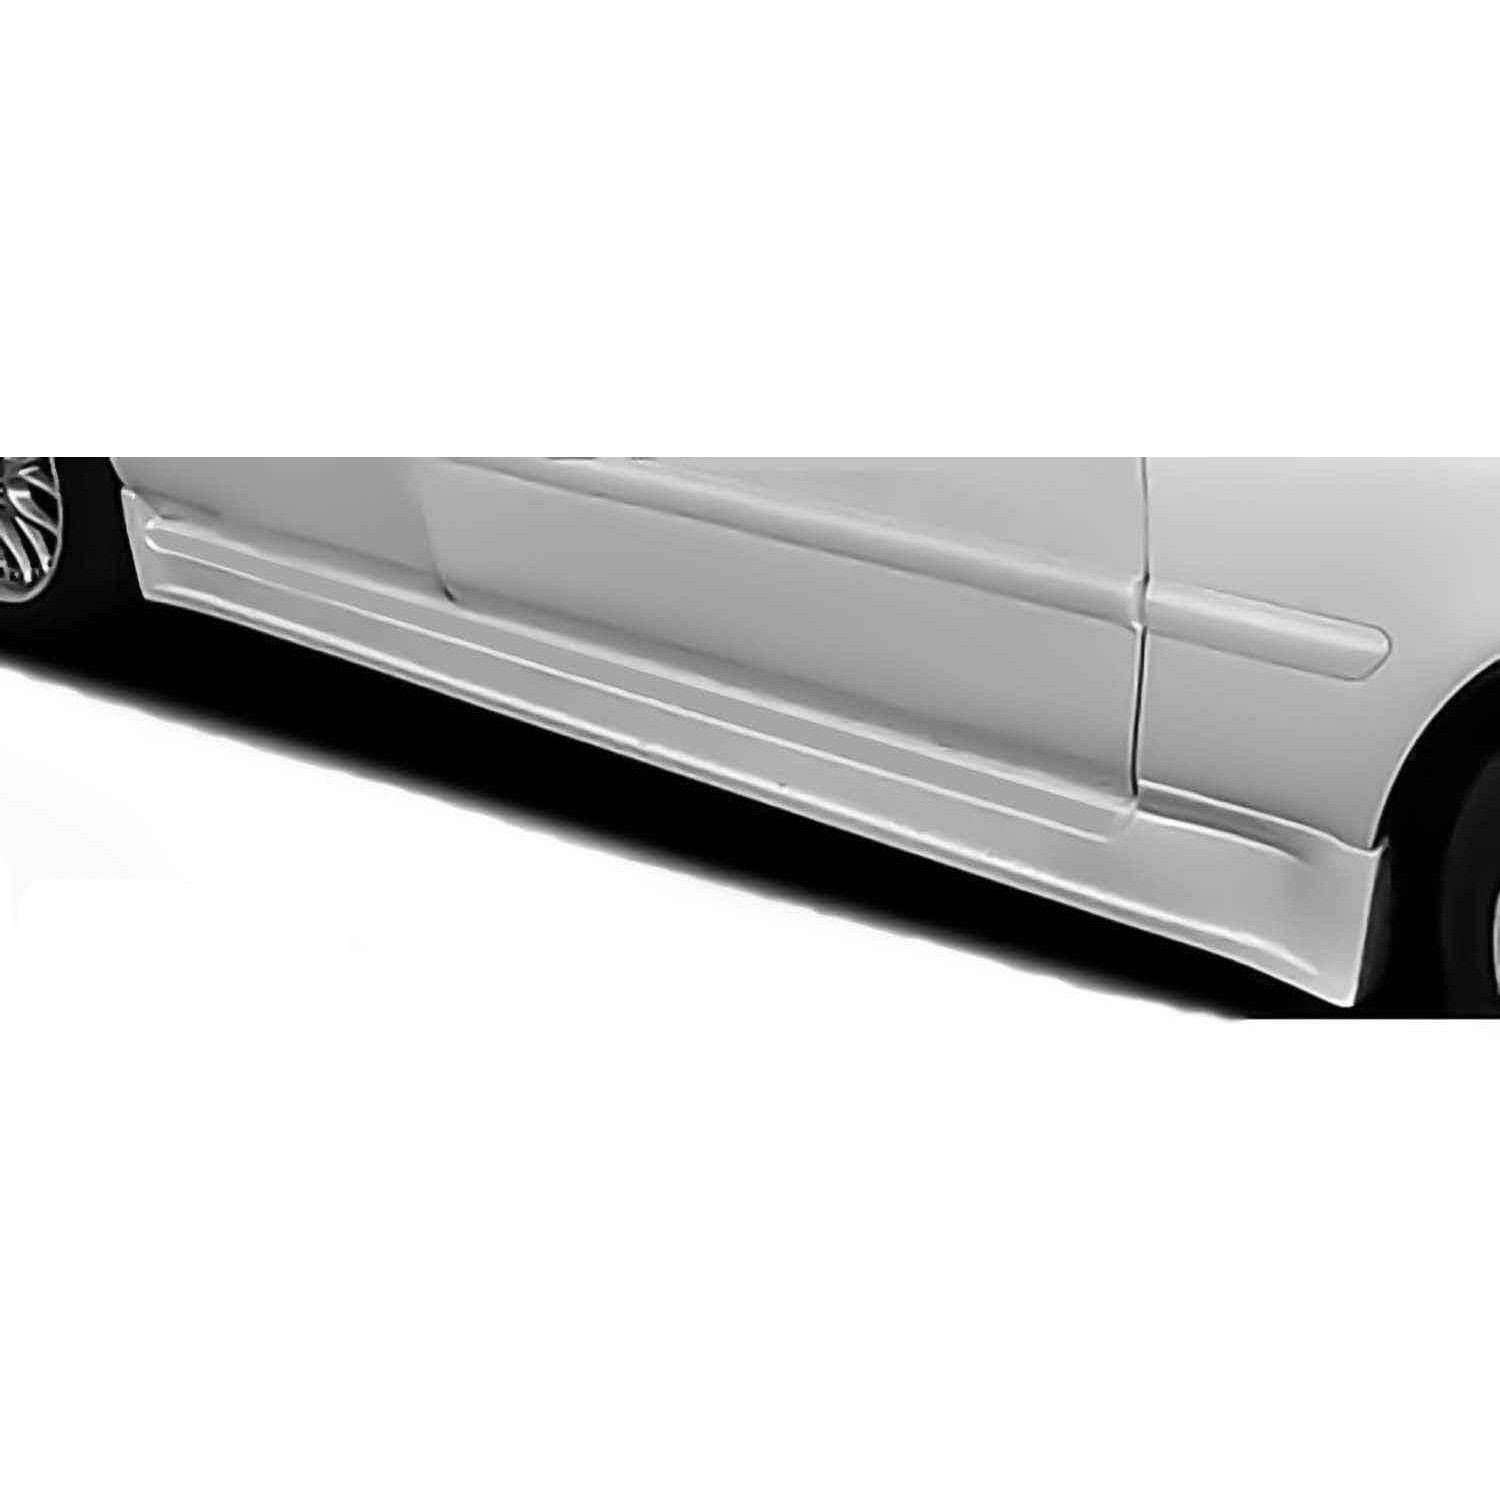 Acura TL 1996-1998 Type S Style 2 Piece Polyurethane Side Skirts - Pair